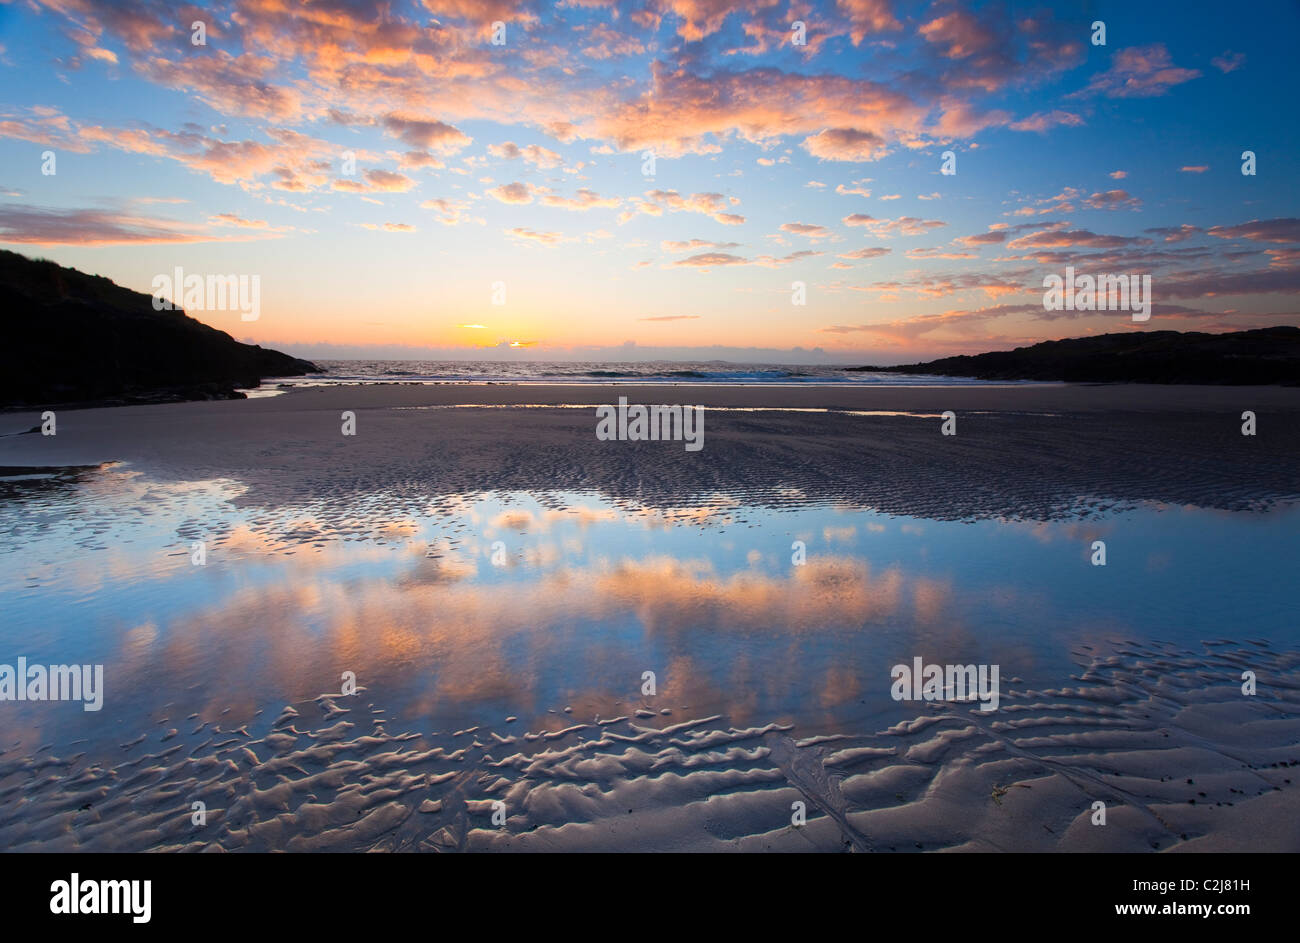 Am Abend Strand Reflexionen in False Bay, Connemara, County Galway, Irland. Stockbild